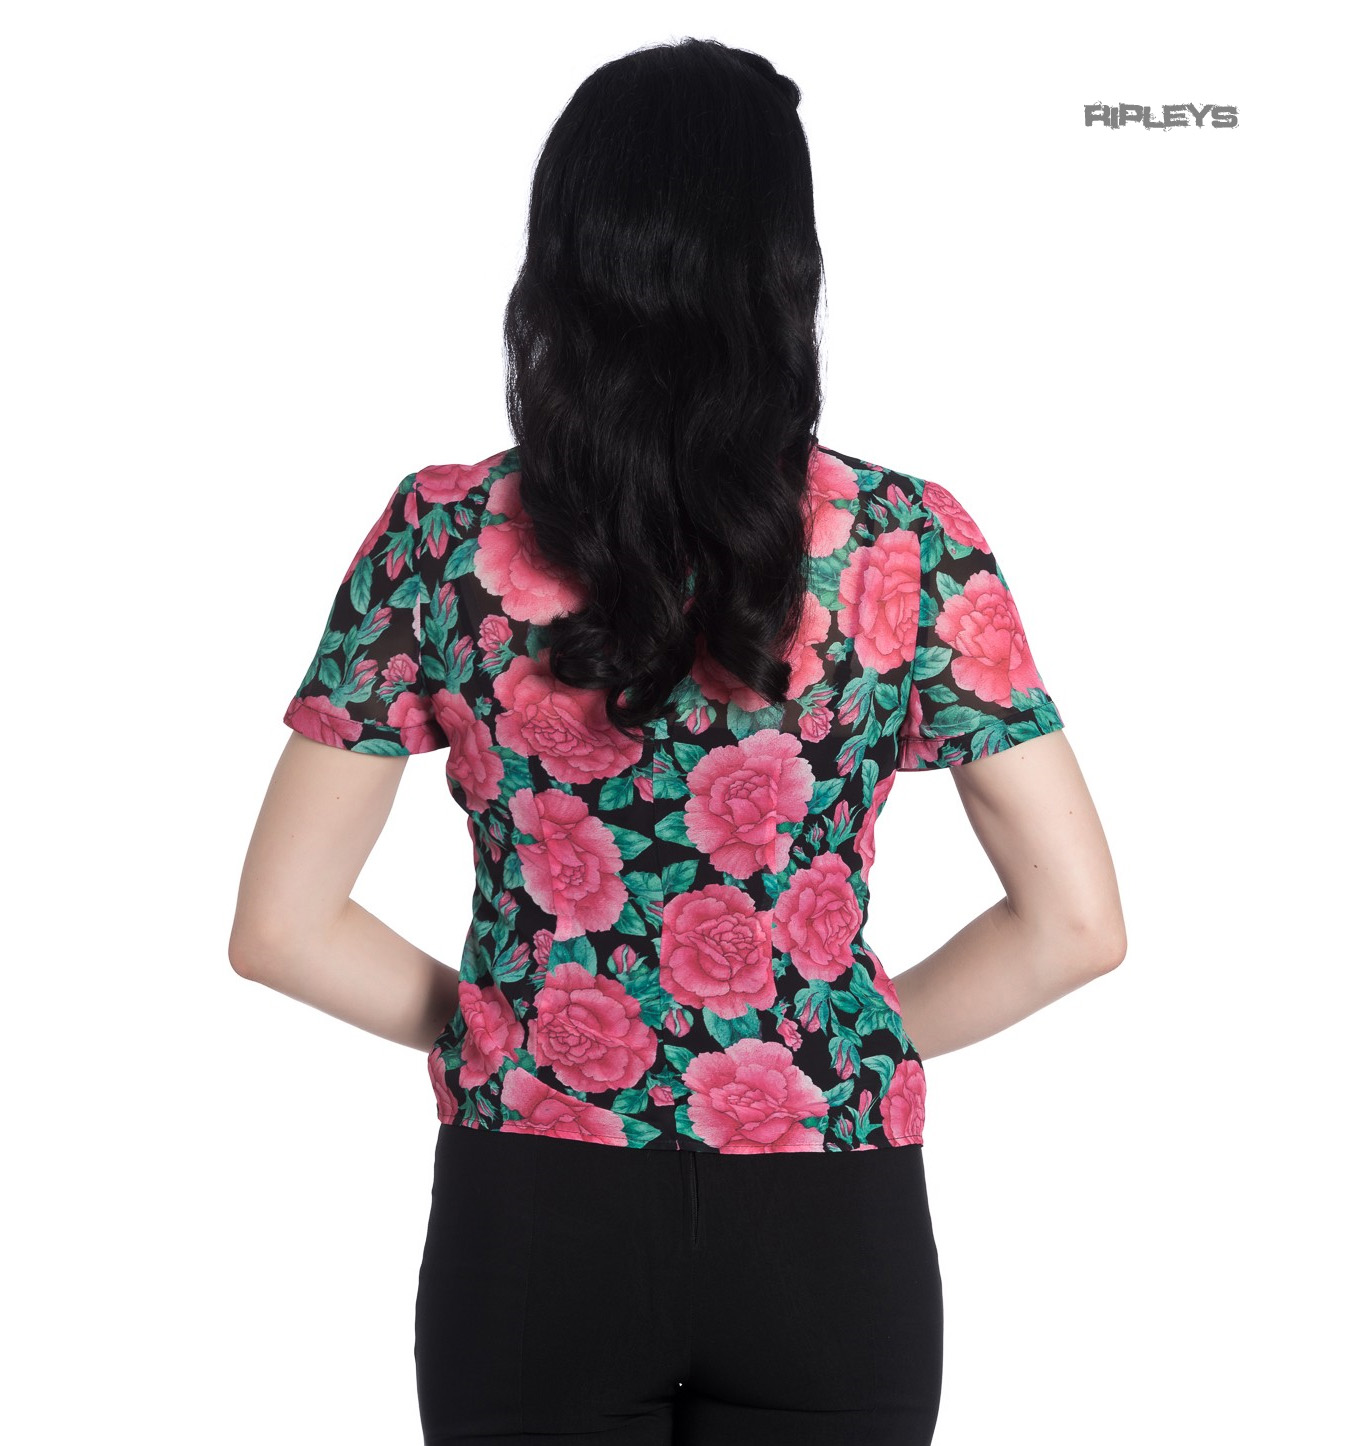 Hell-Bunny-Shirt-Top-Flowers-Roses-EDEN-ROSE-Black-Pink-Blouse-All-Sizes thumbnail 16